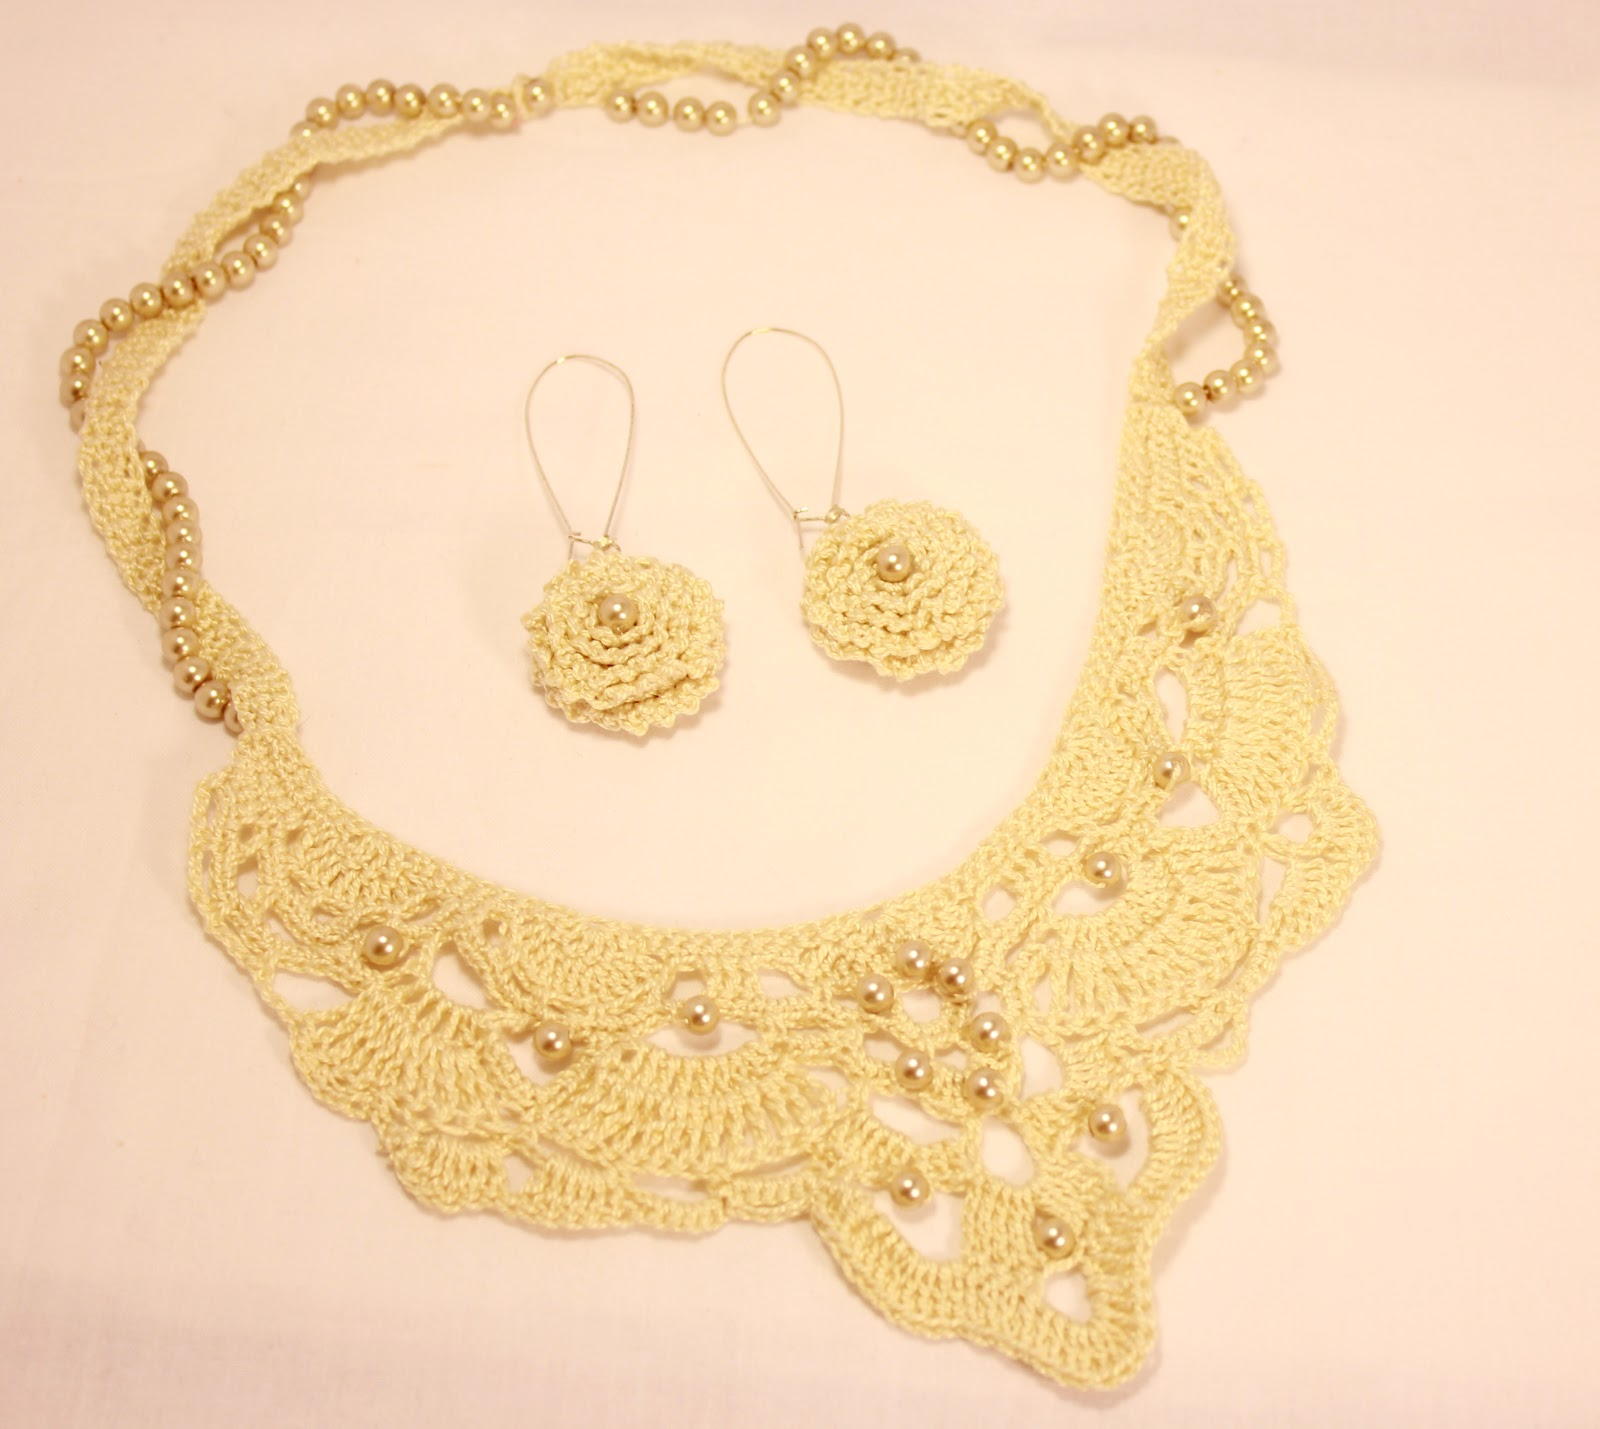 In Karapoozville: Crochet bib necklace diagram FREE